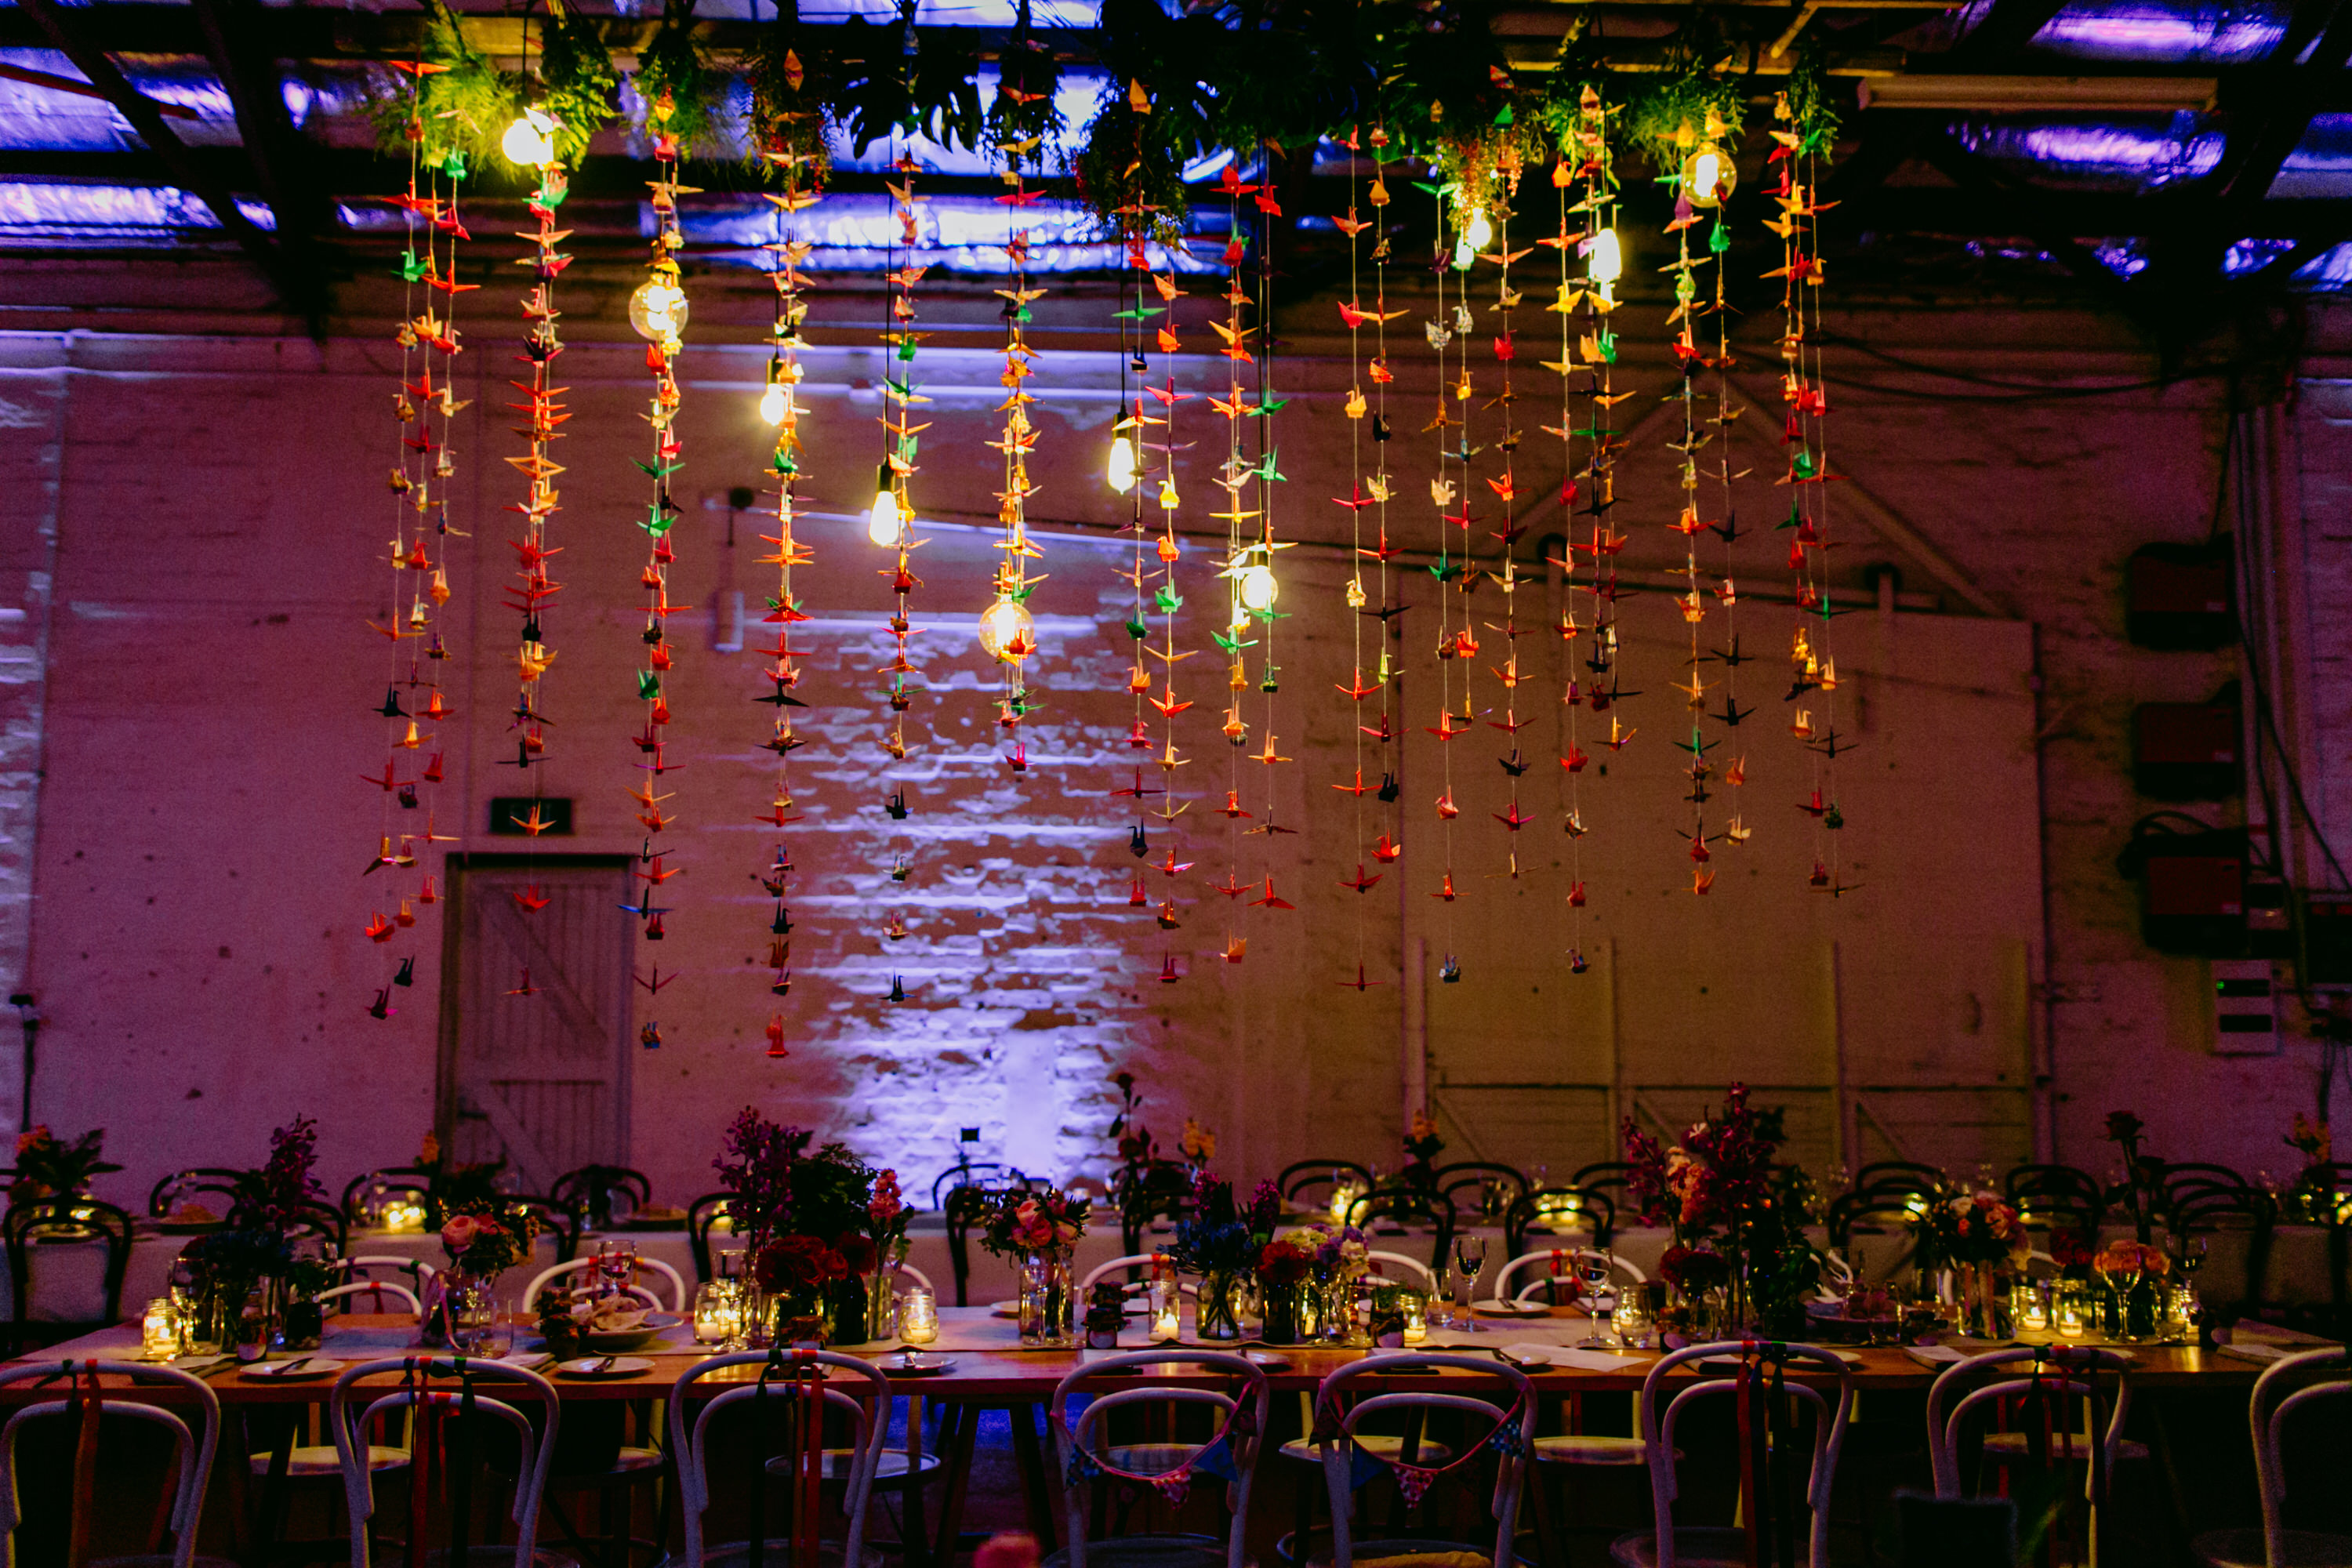 Aimee Claire Photography, Studio Event Design